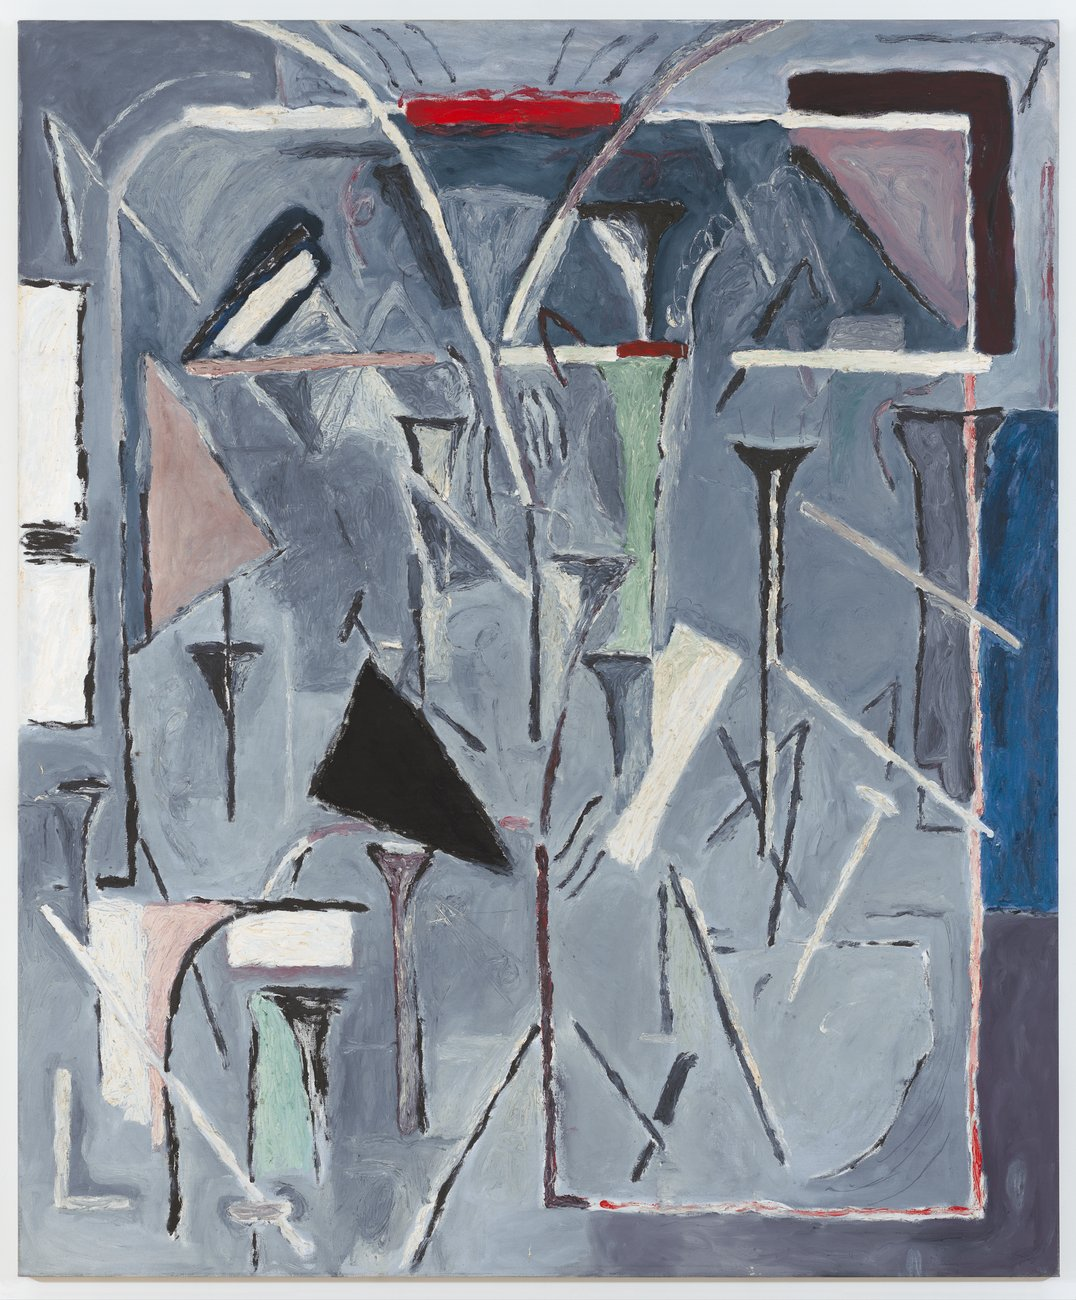 A painting in gray with abstract lines in black and white